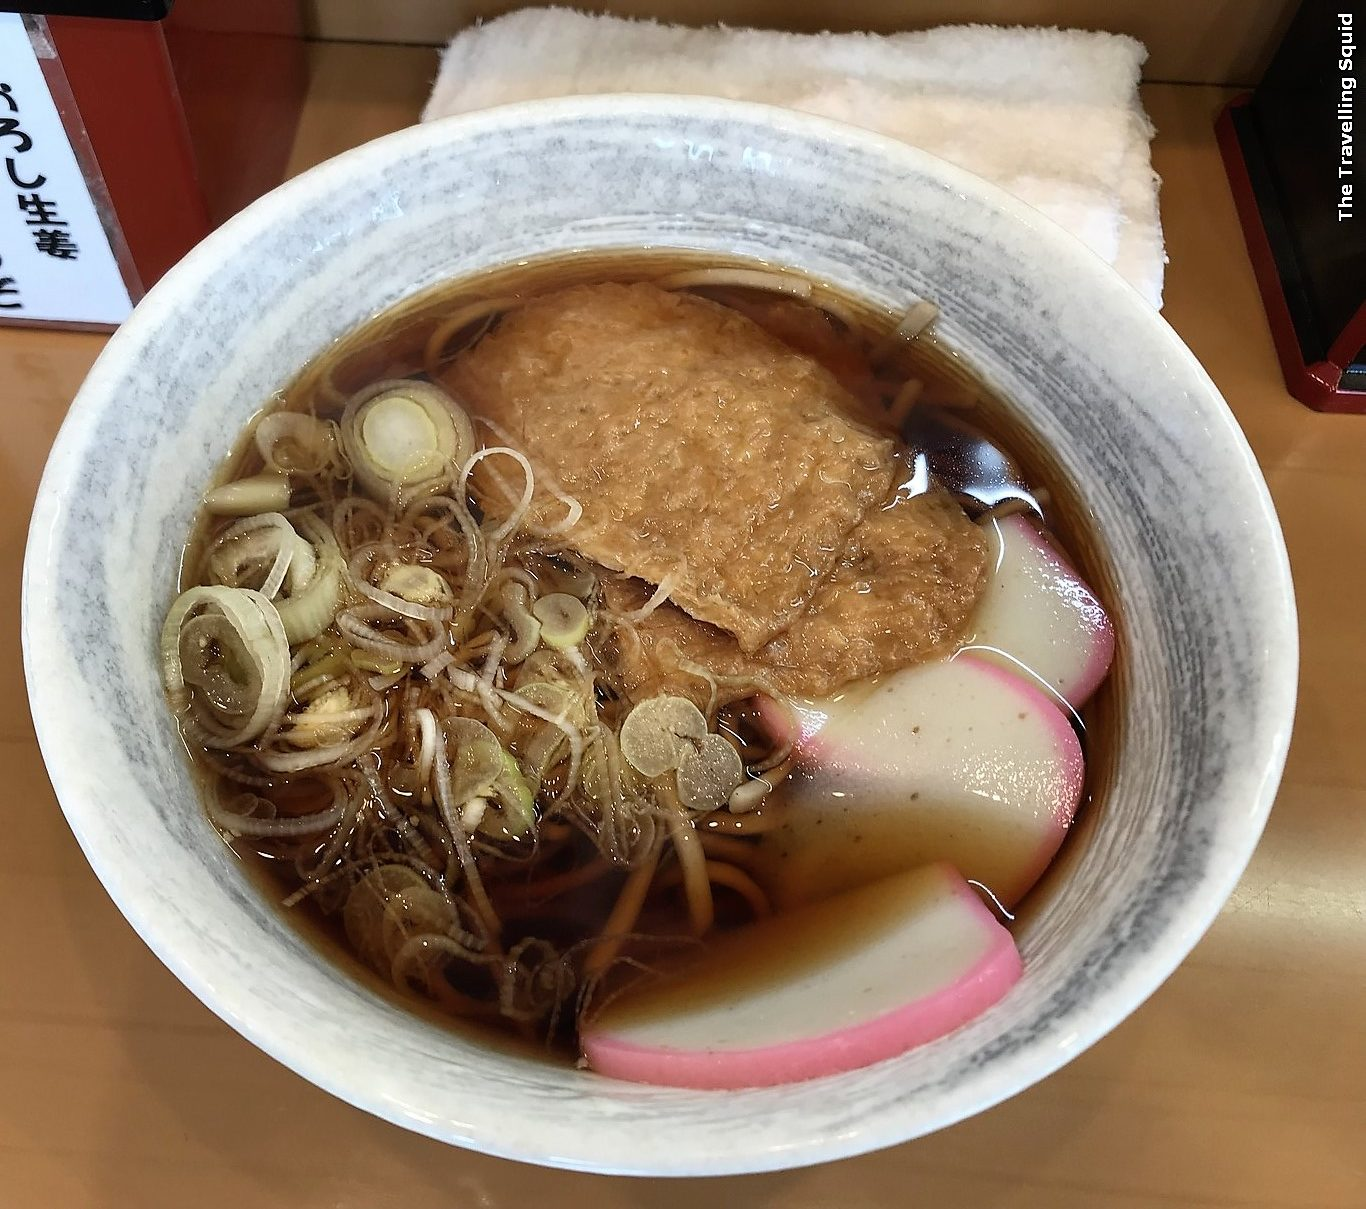 soba noodles at Mishima Station in Japan